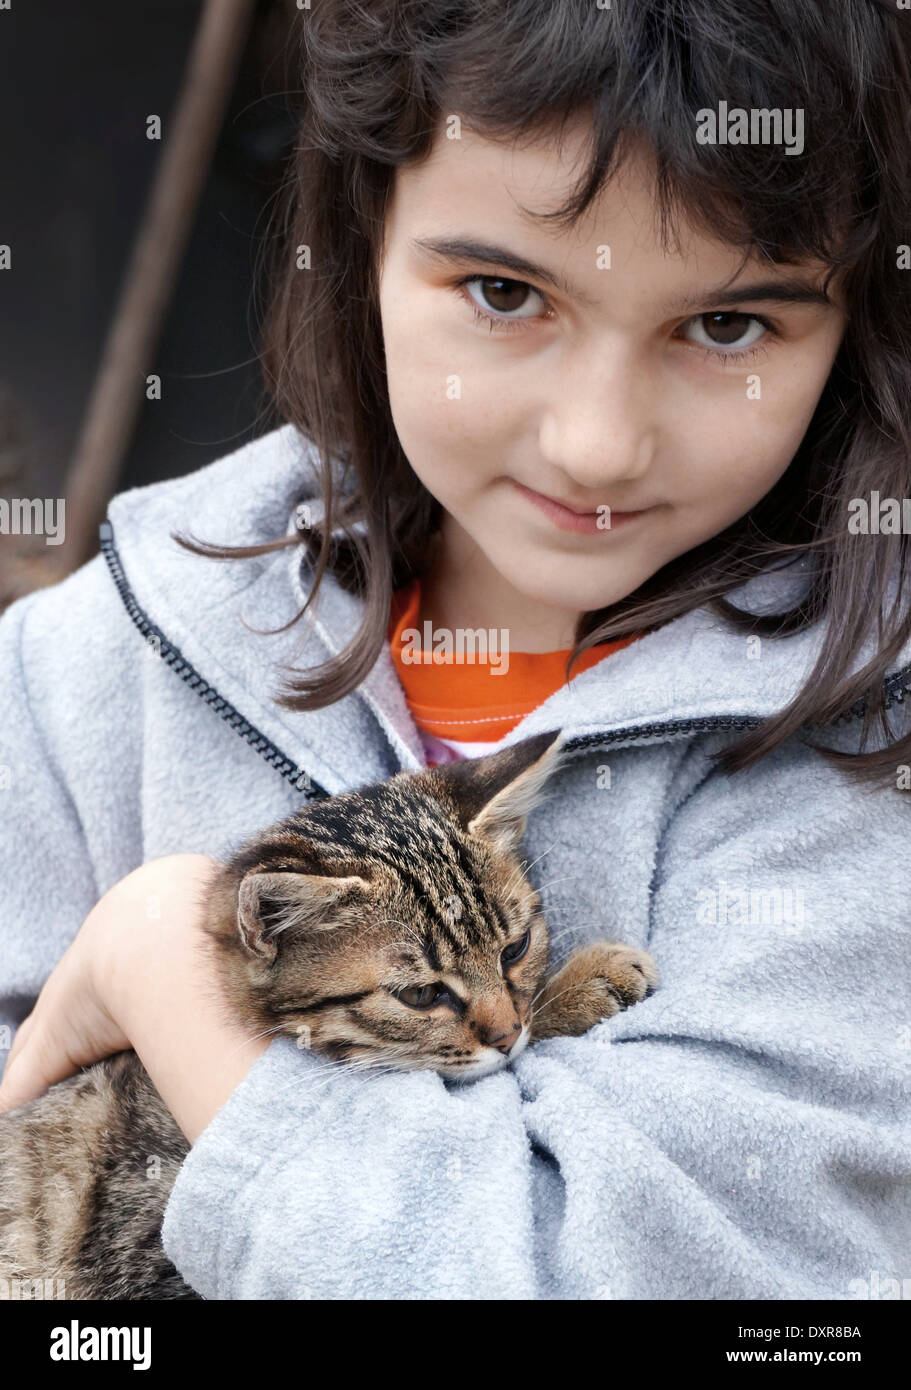 A cute little eight years old girl takes care of a cute kitten Stock Photo